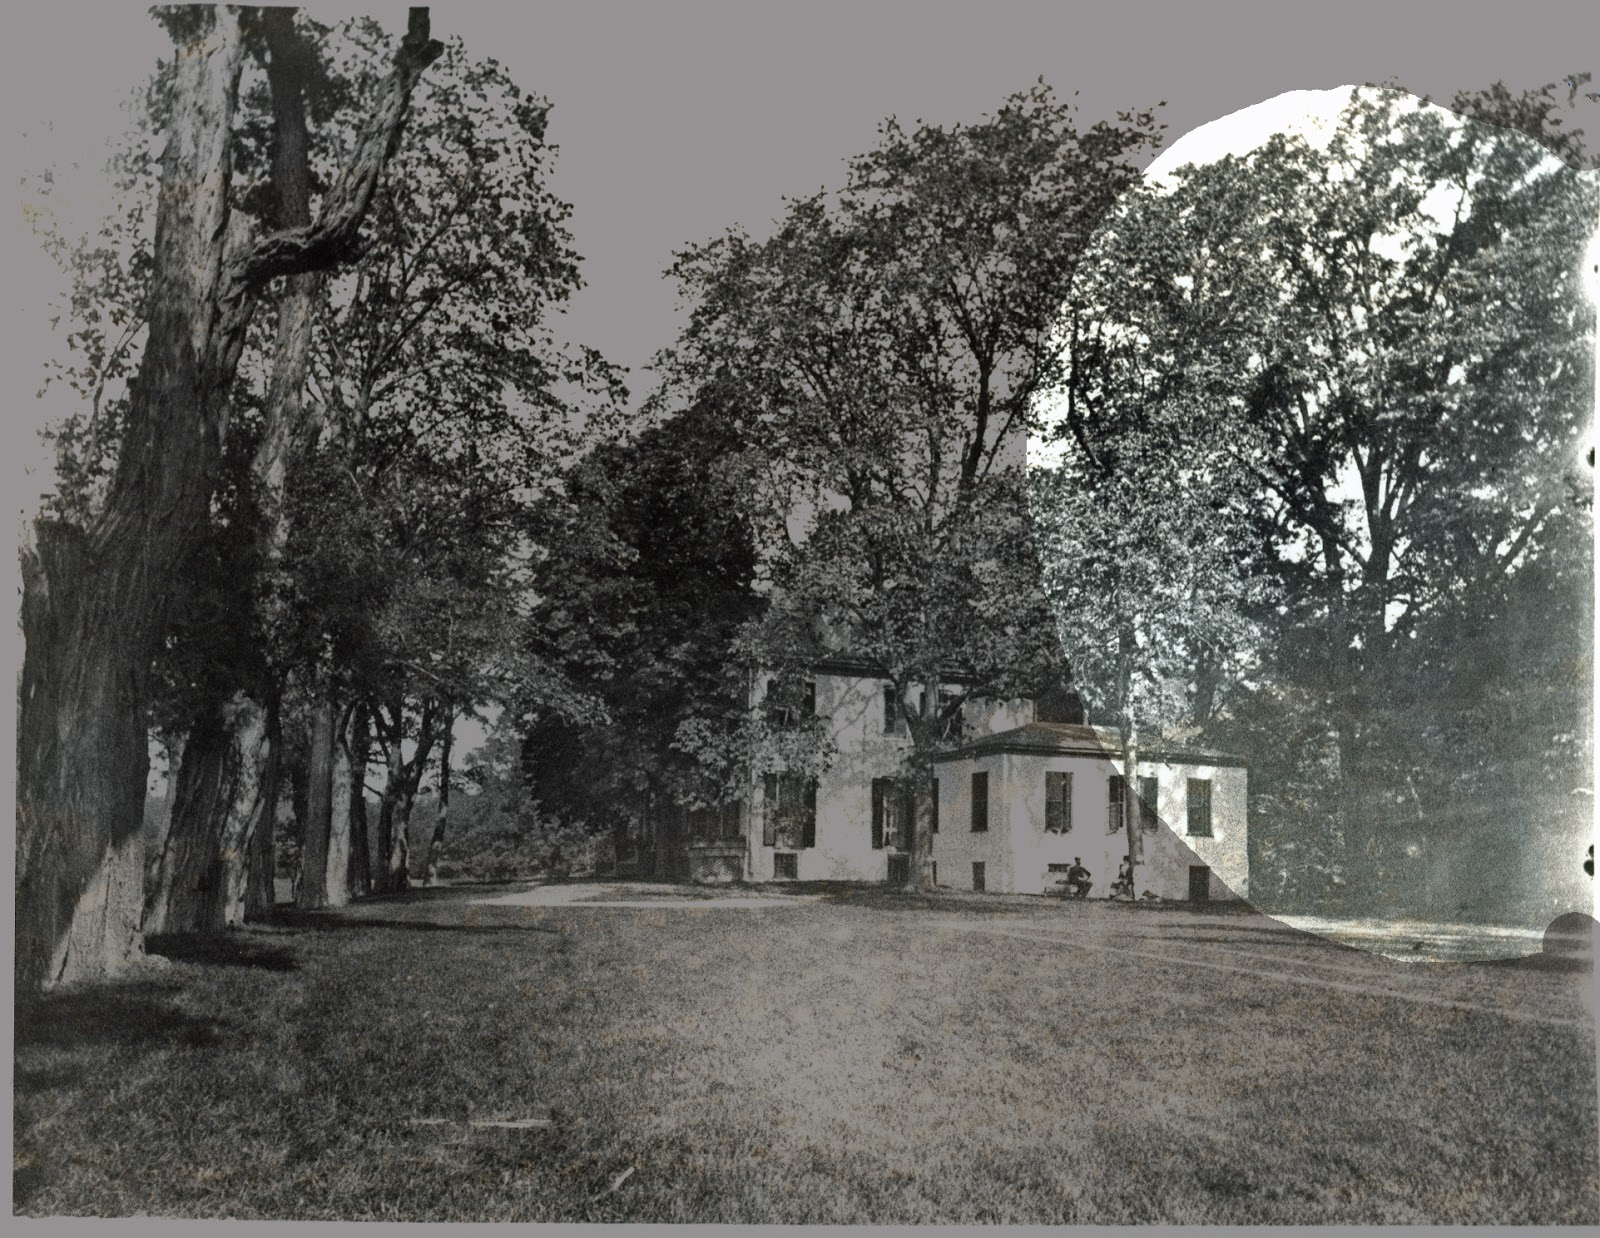 Clermont State Historic Site 2015